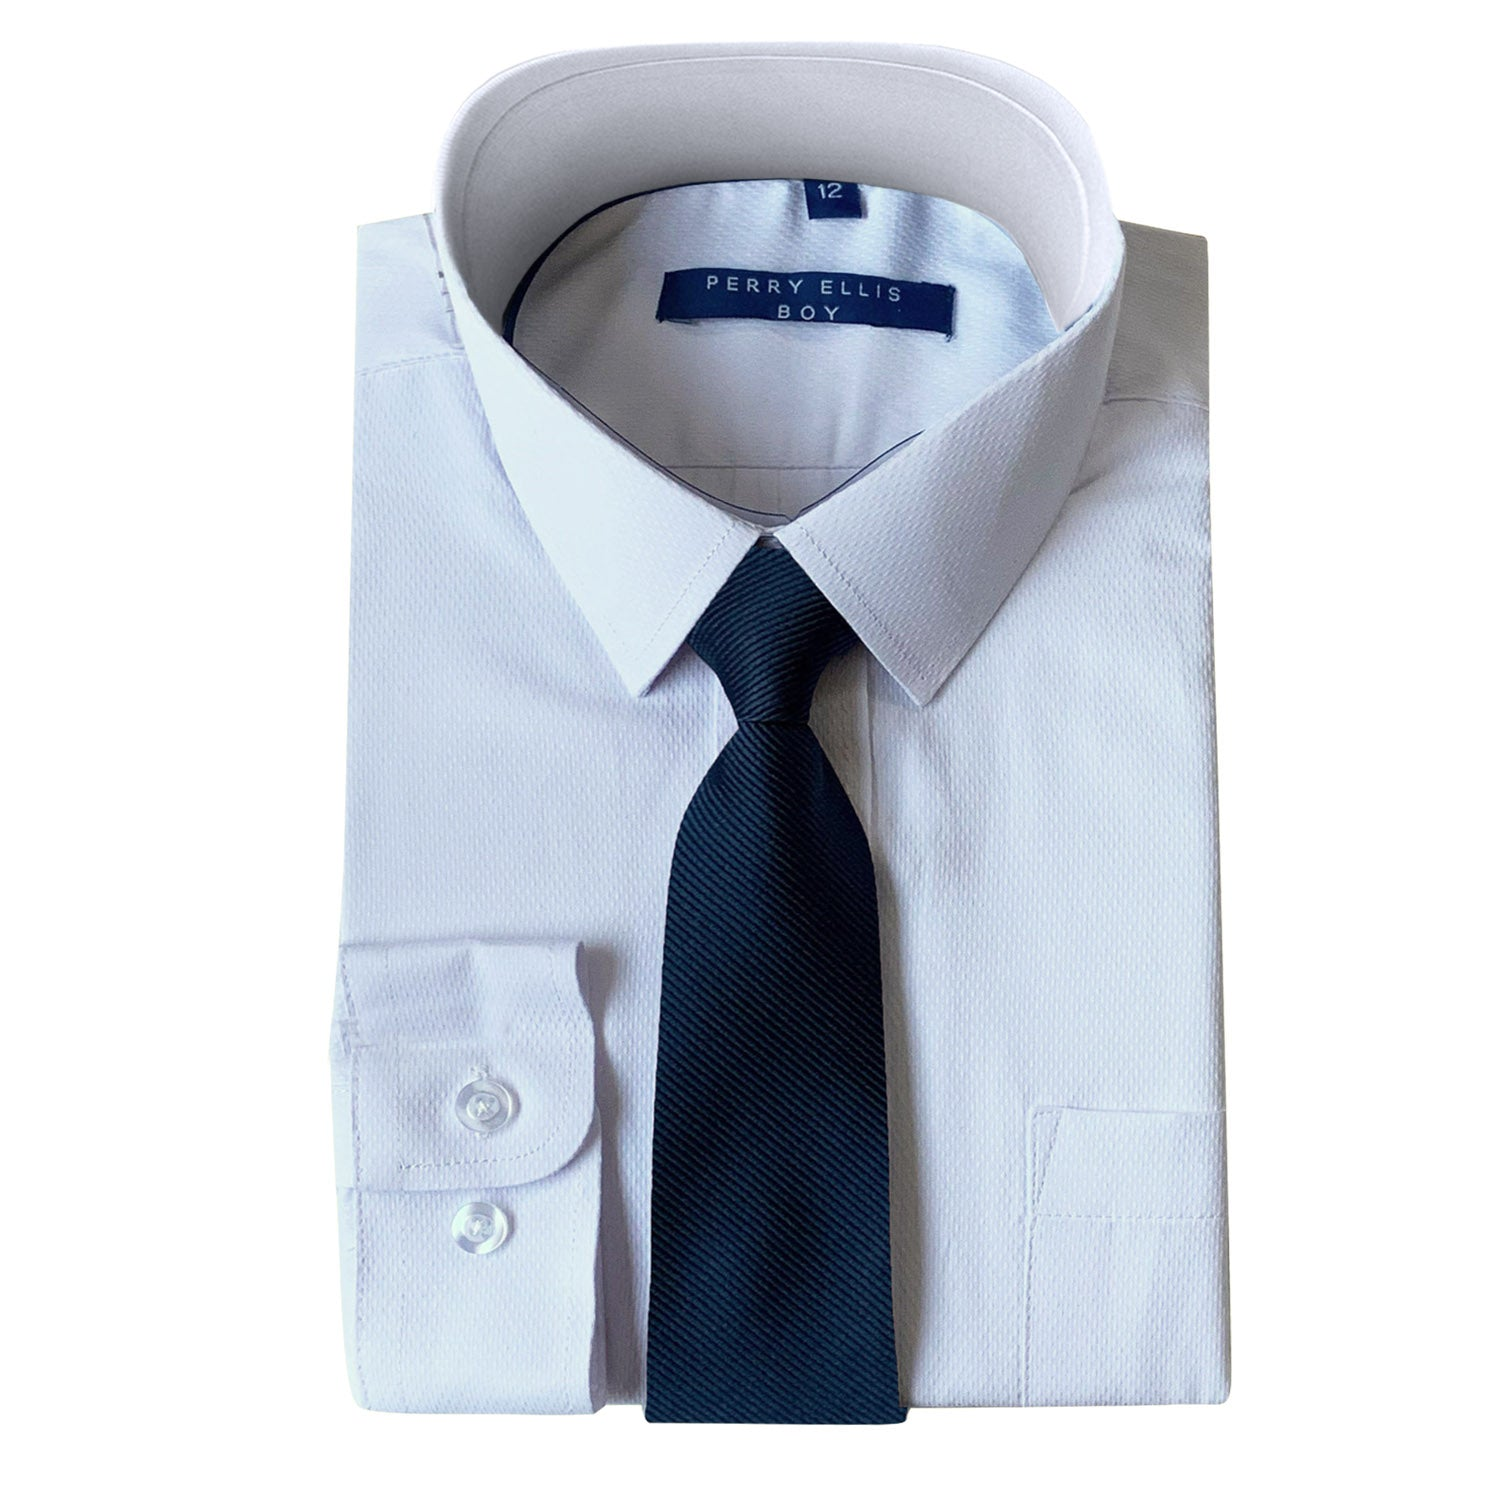 Perry Ellis Boys Dress Shirts w Indigo Tie Solid Shirts w Colored Tie